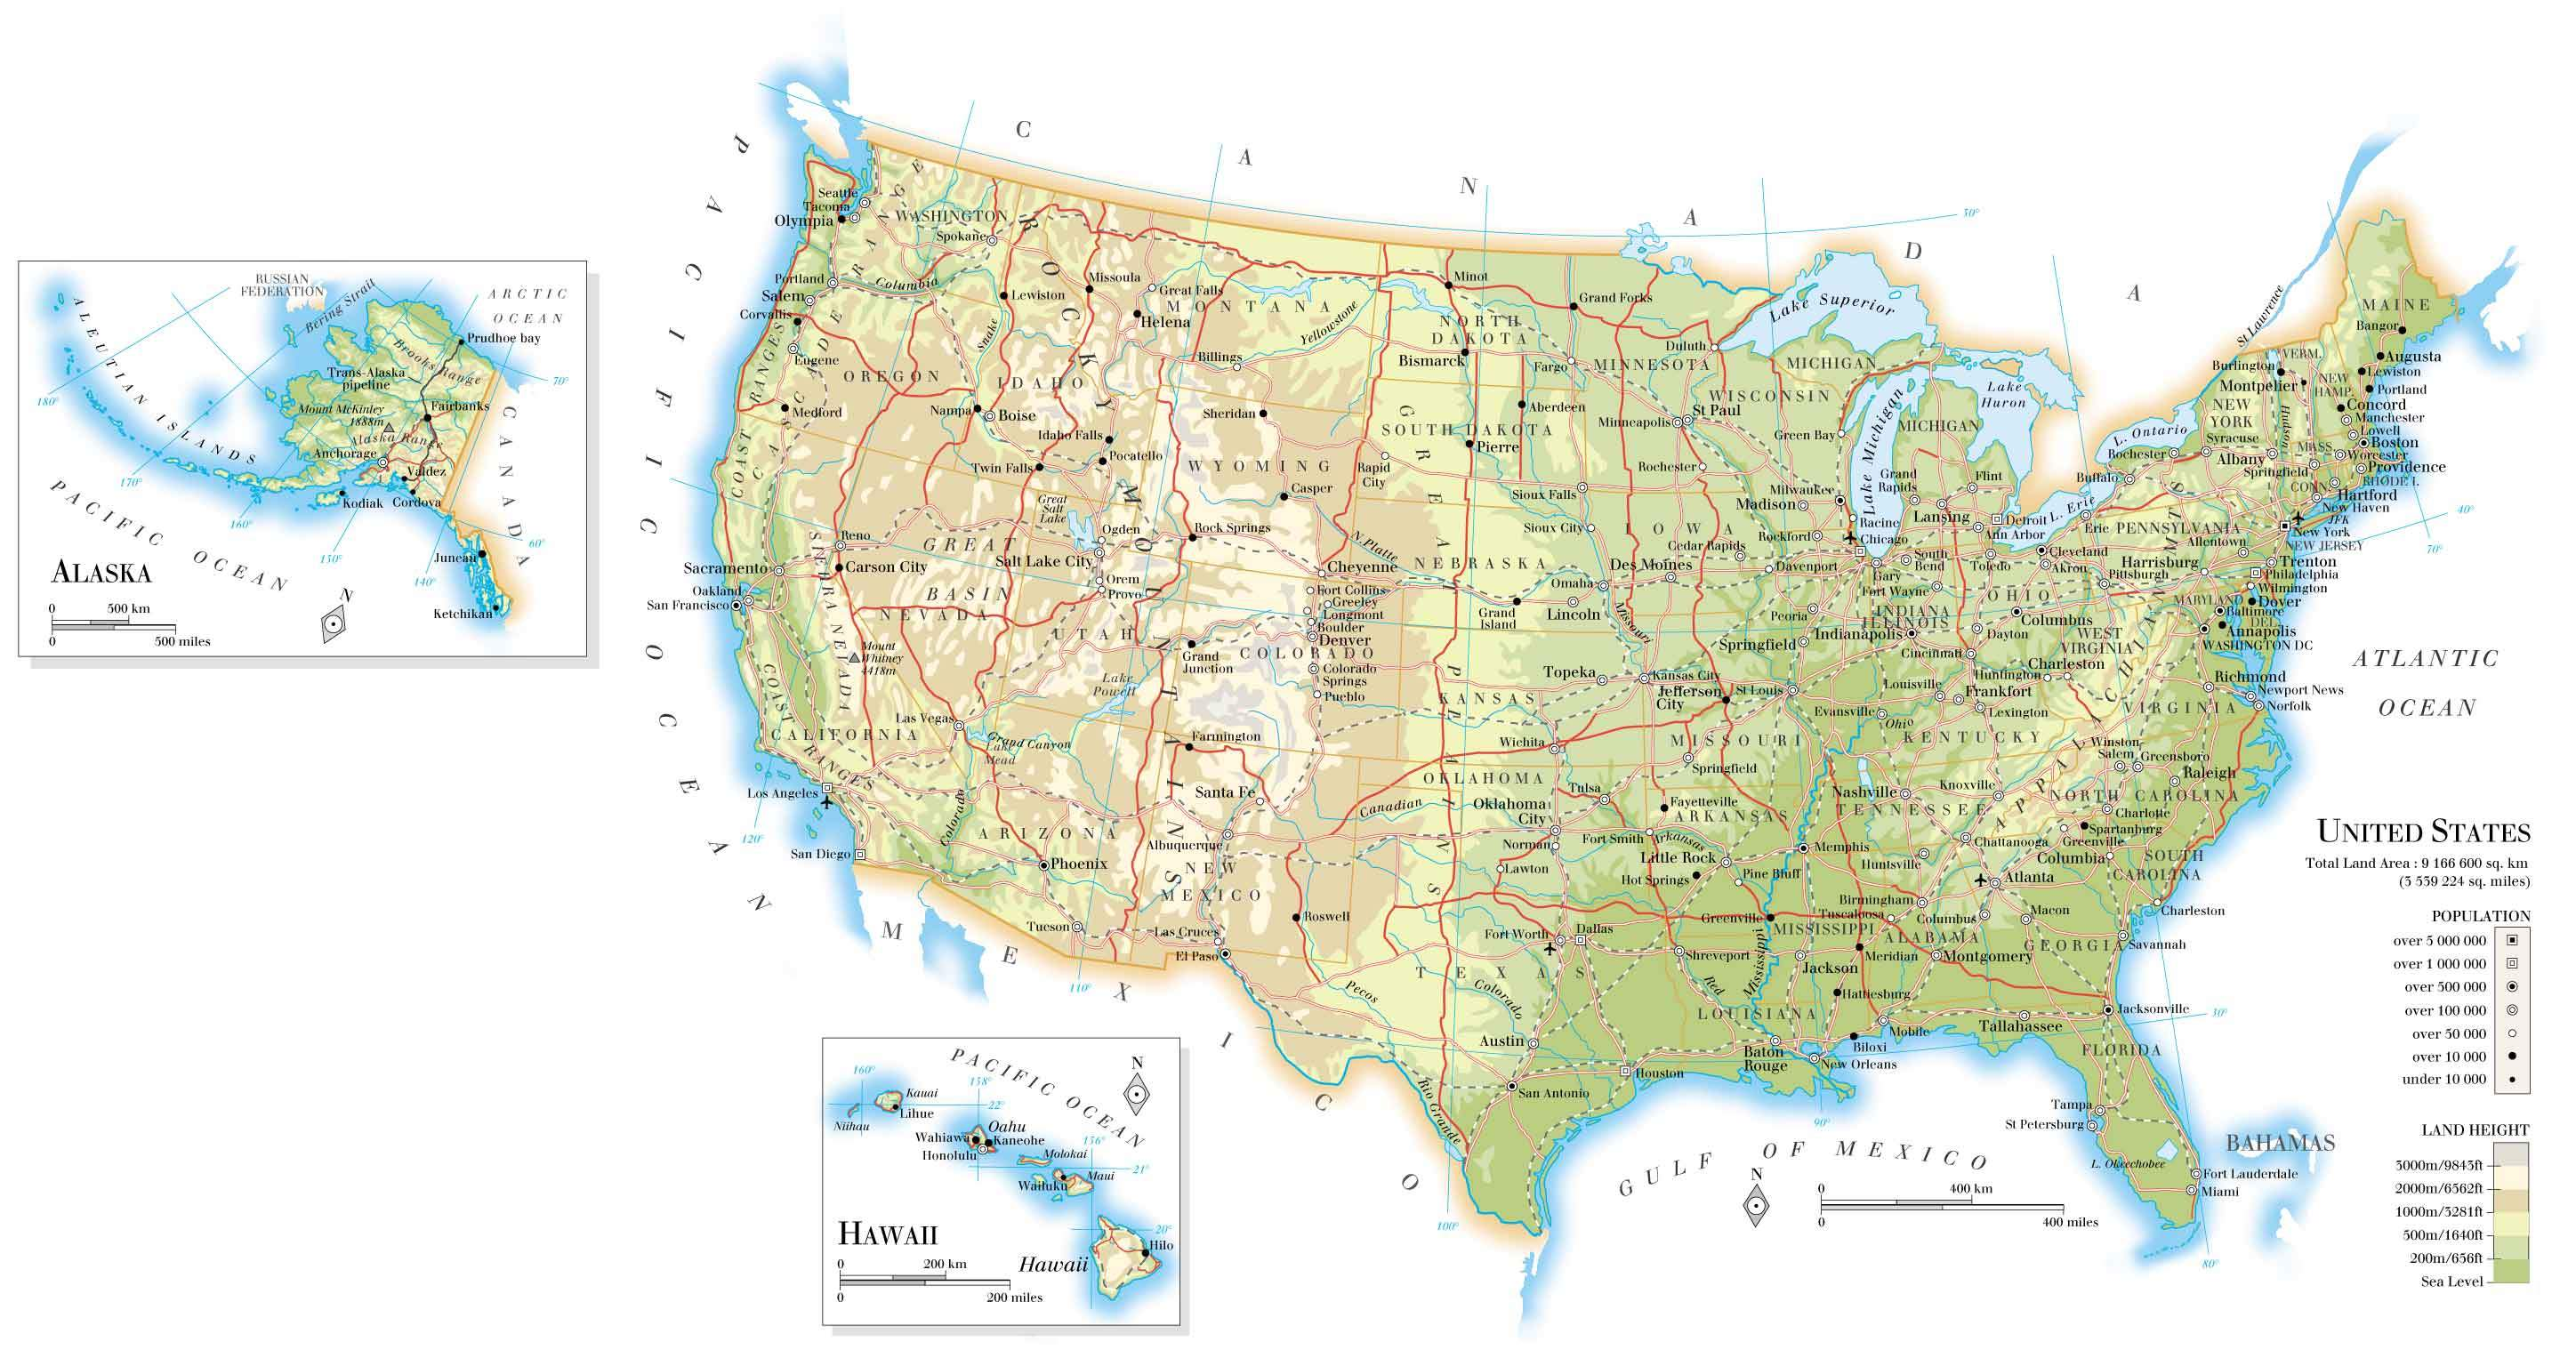 US Maps USA State Maps Maps Of Continents Maps Usa Map Chicago - Us map states with cities